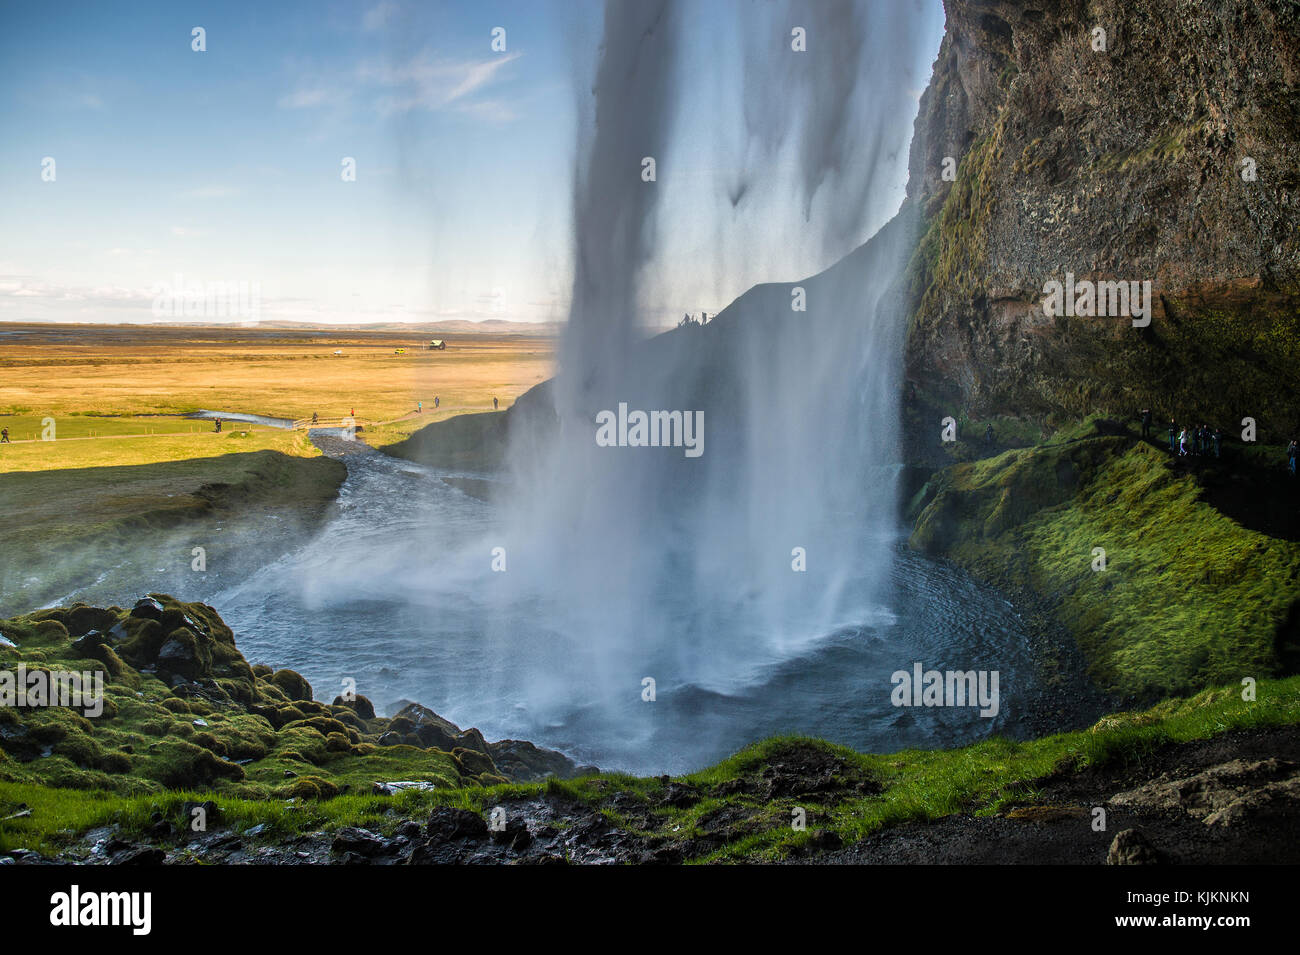 Cascade de Seljalandsfoss. L'Islande. Photo Stock